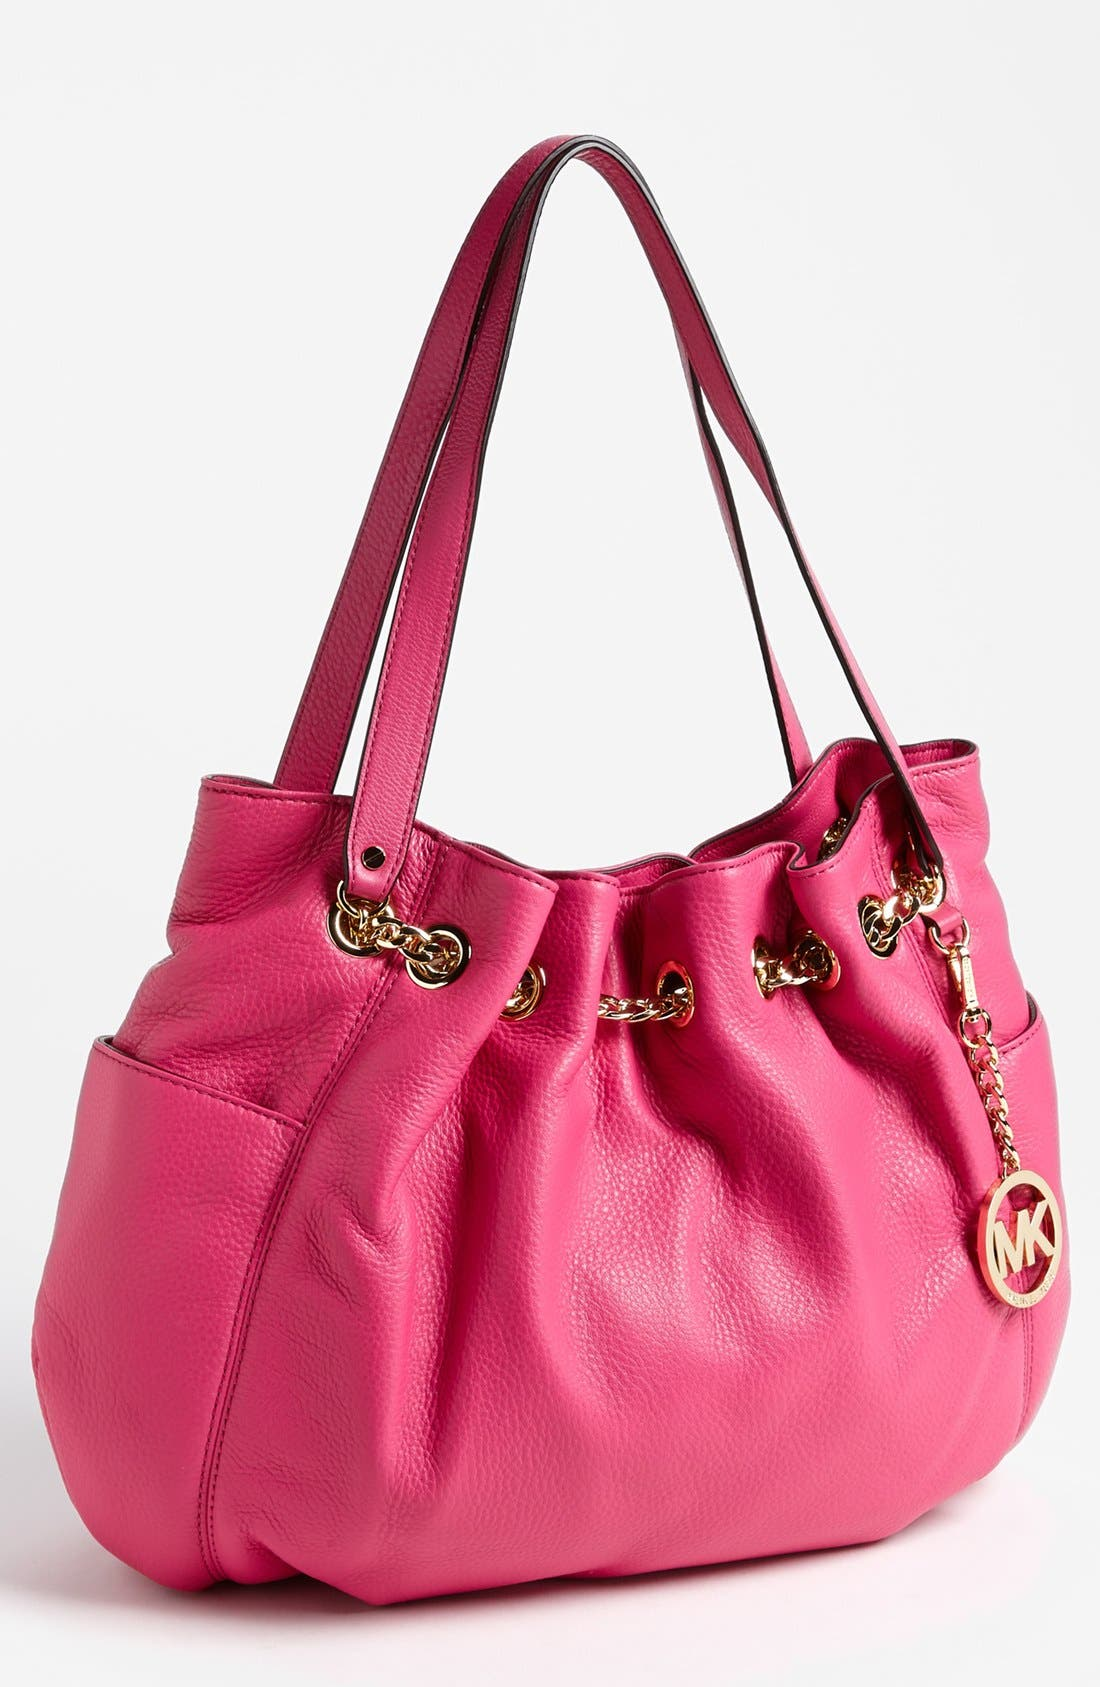 Main Image - MICHAEL Michael Kors 'Jet Set - Chain Ring' Tote (Special Purchase)